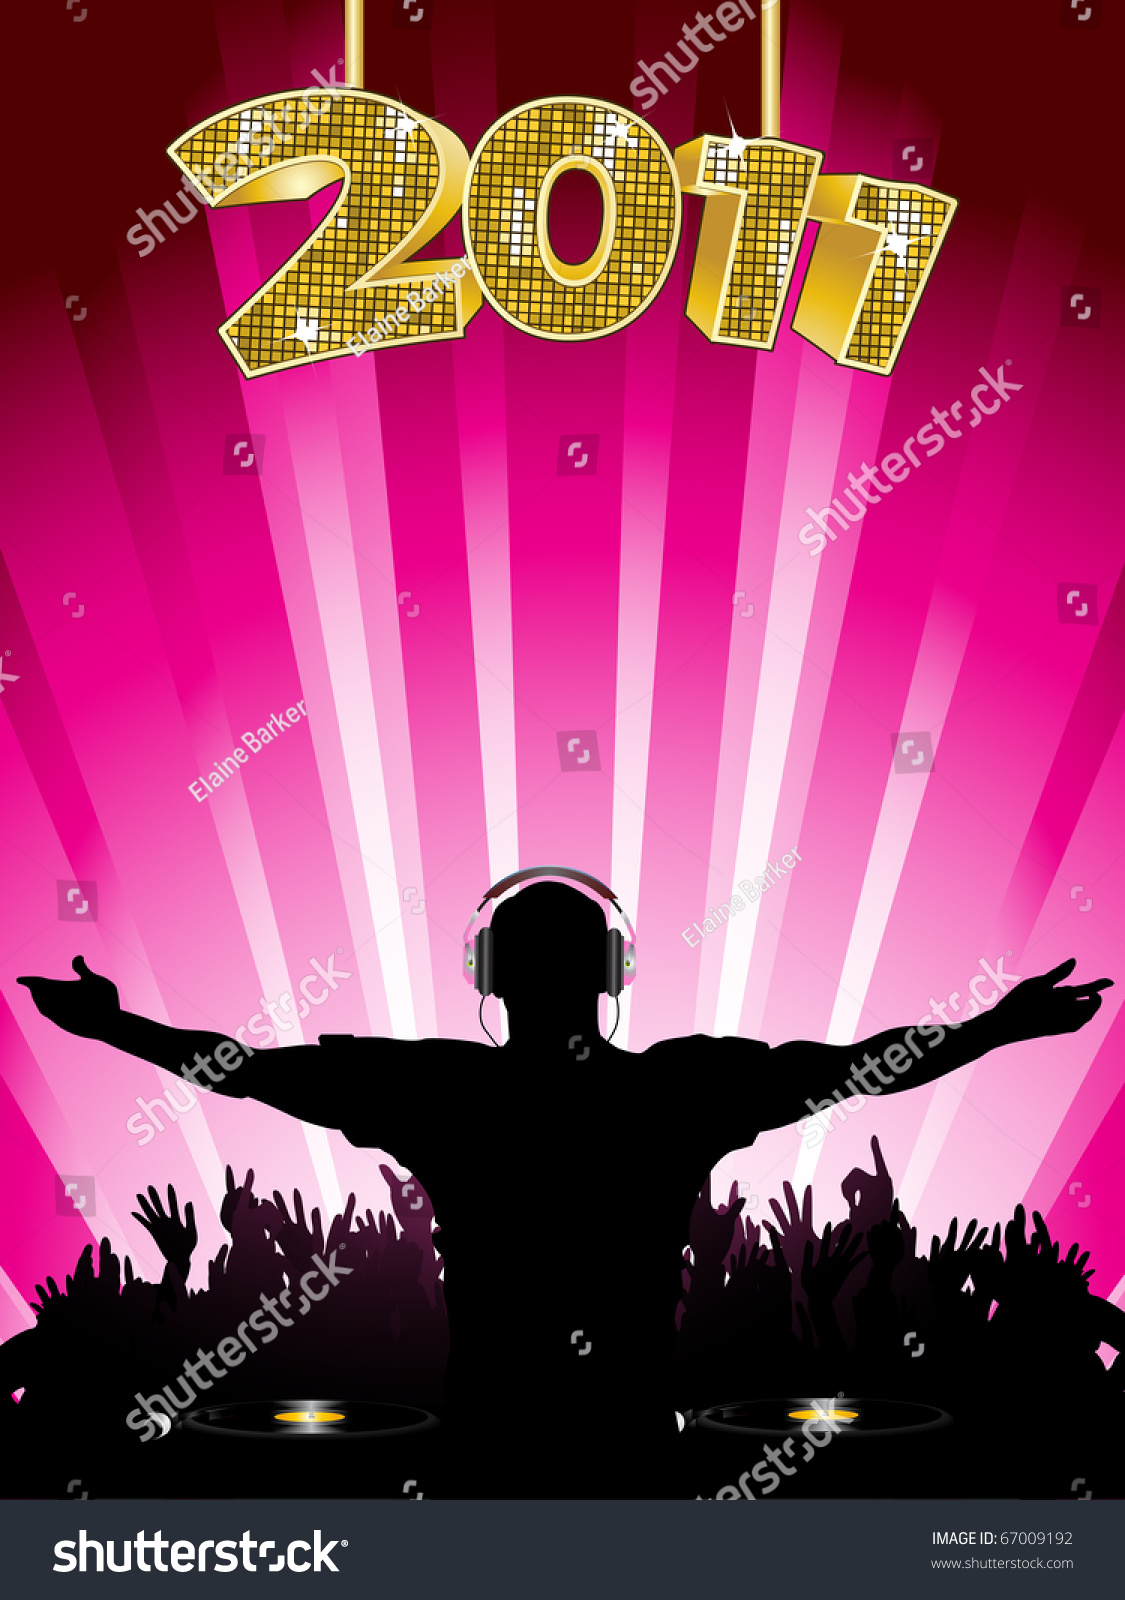 dj and crowd new year party background with 2011 sign